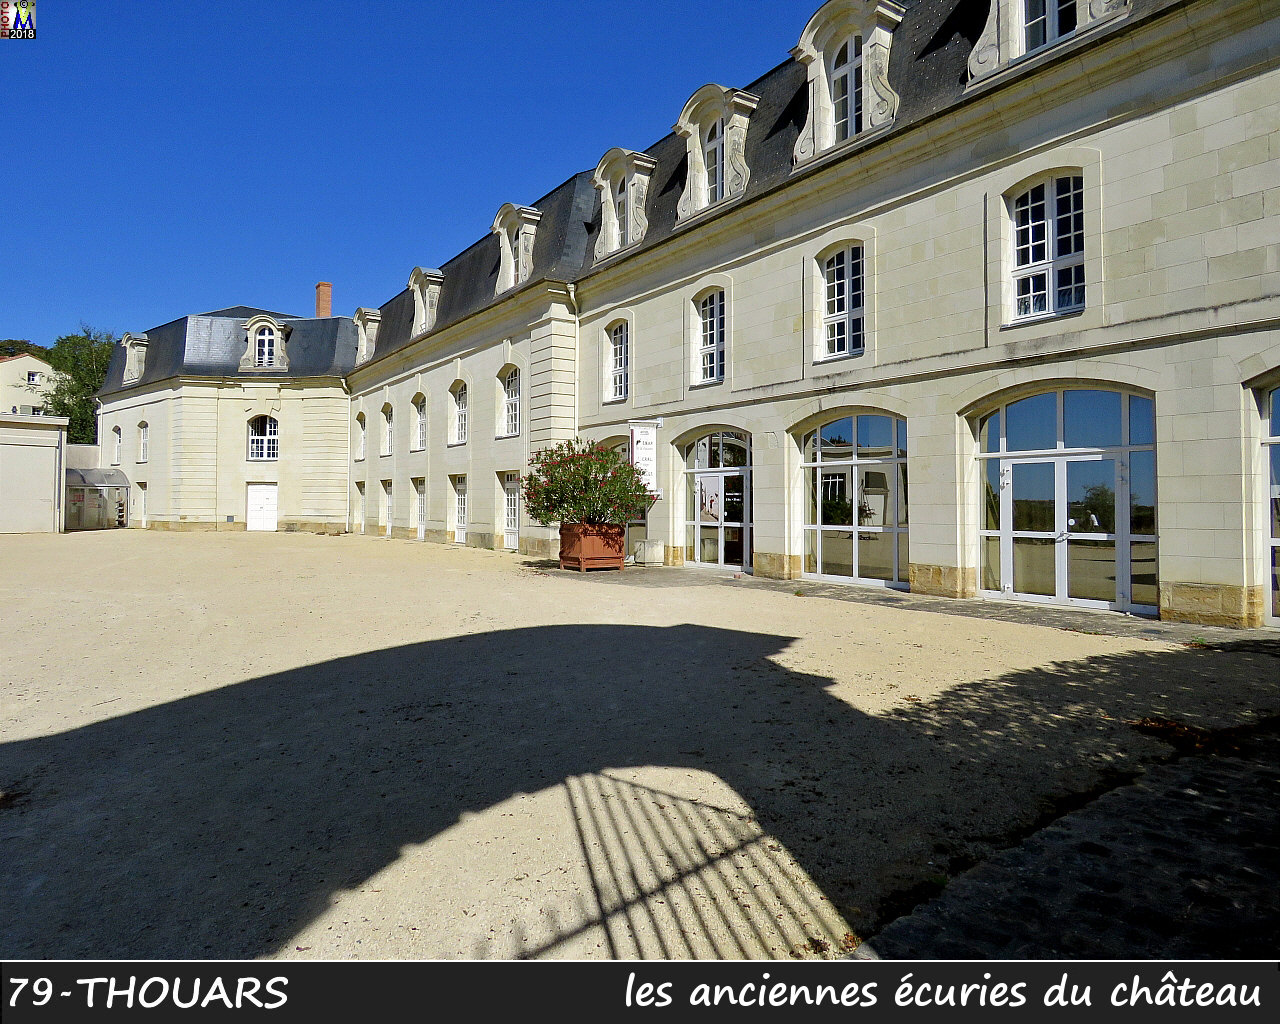 79THOUARS_chateau_1402.jpg